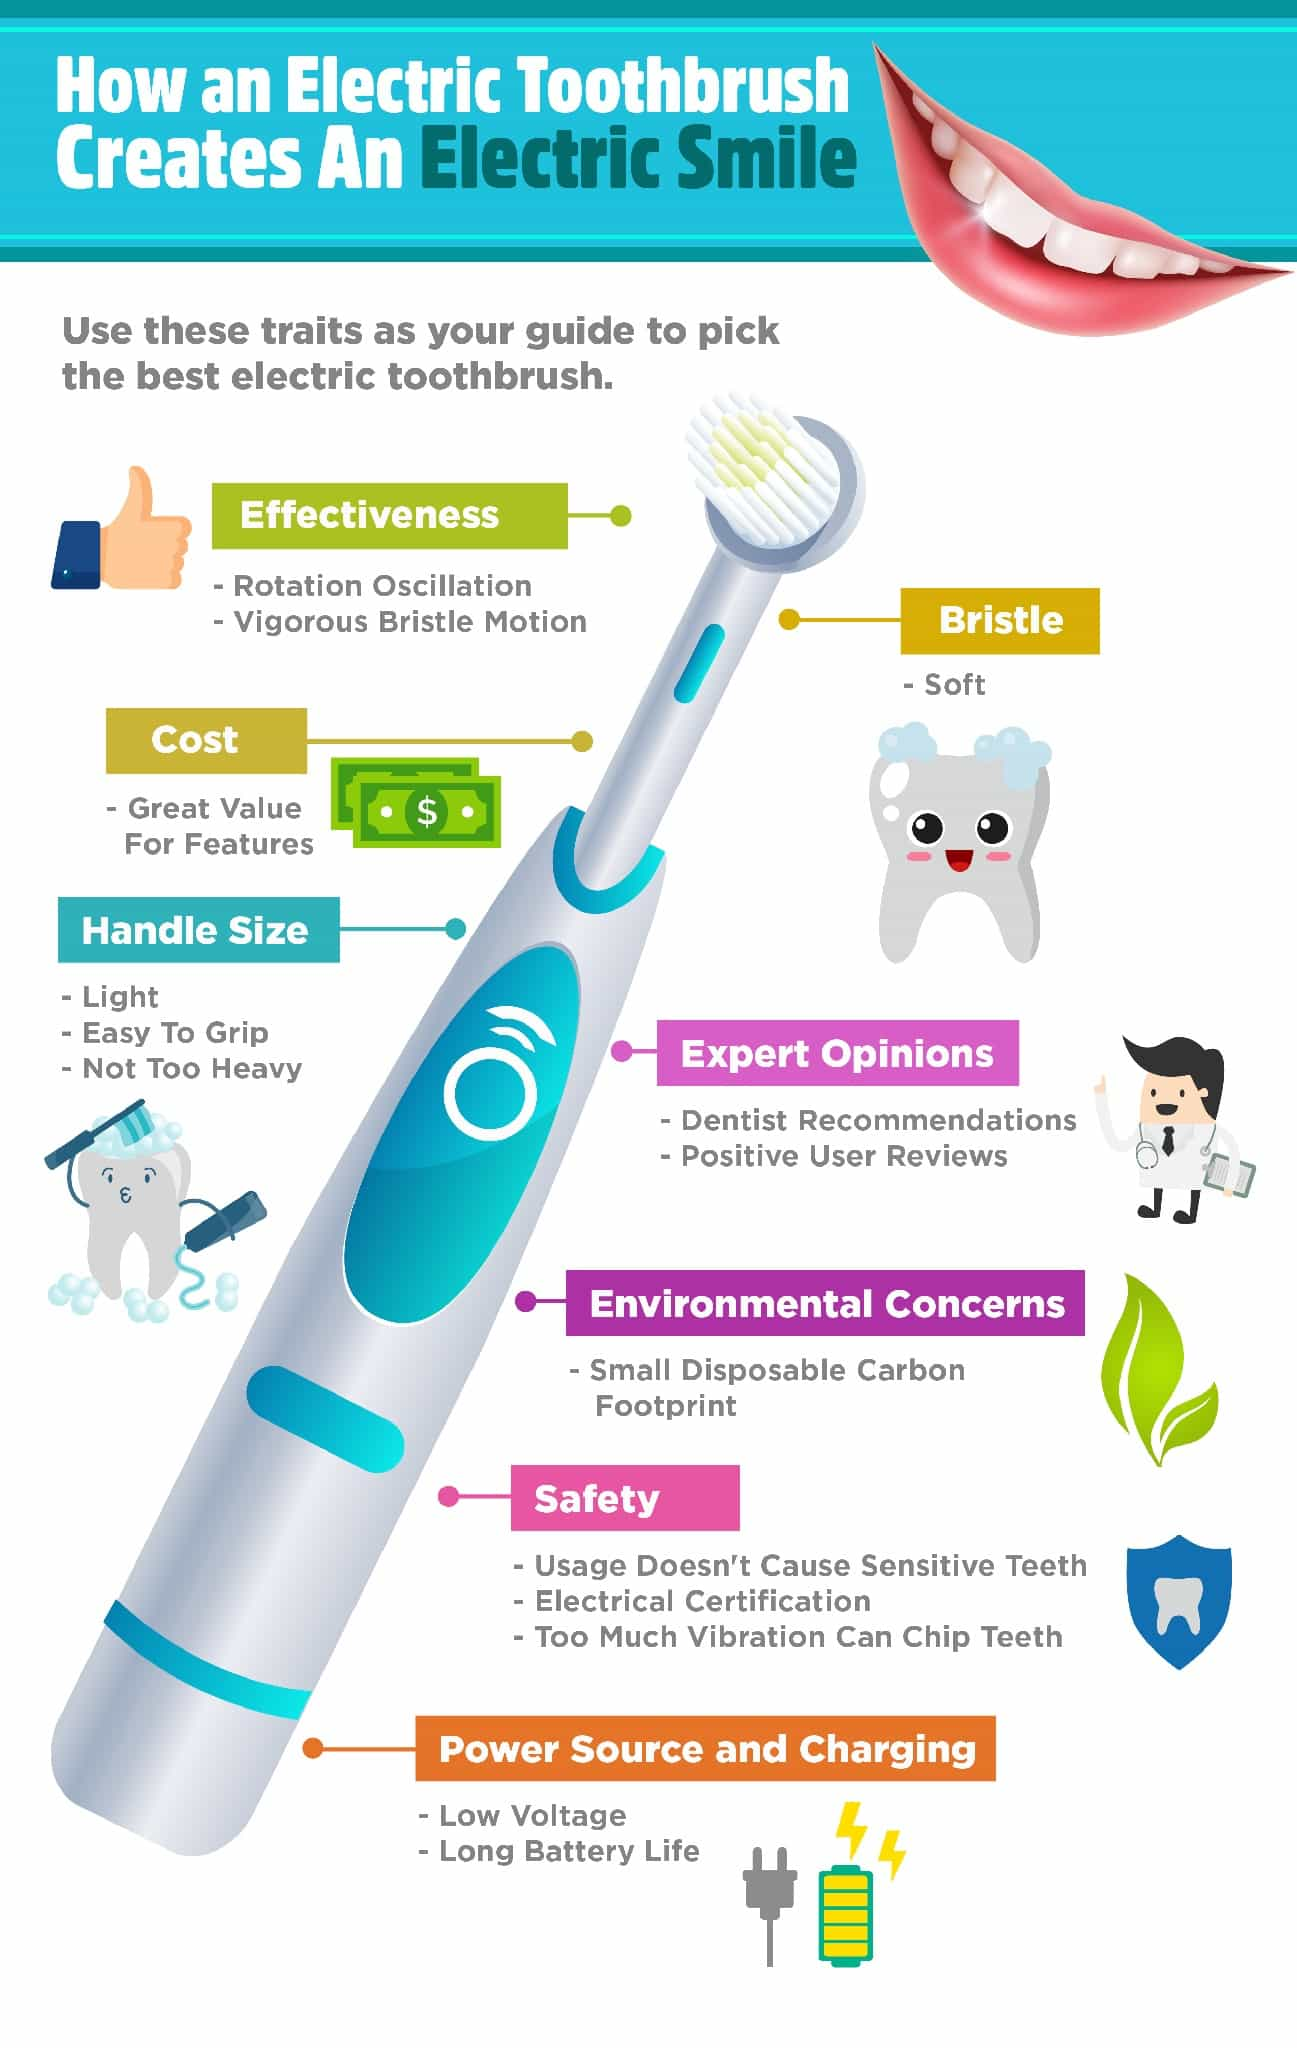 How An Electric Toothbrush Creates An Electric Smile